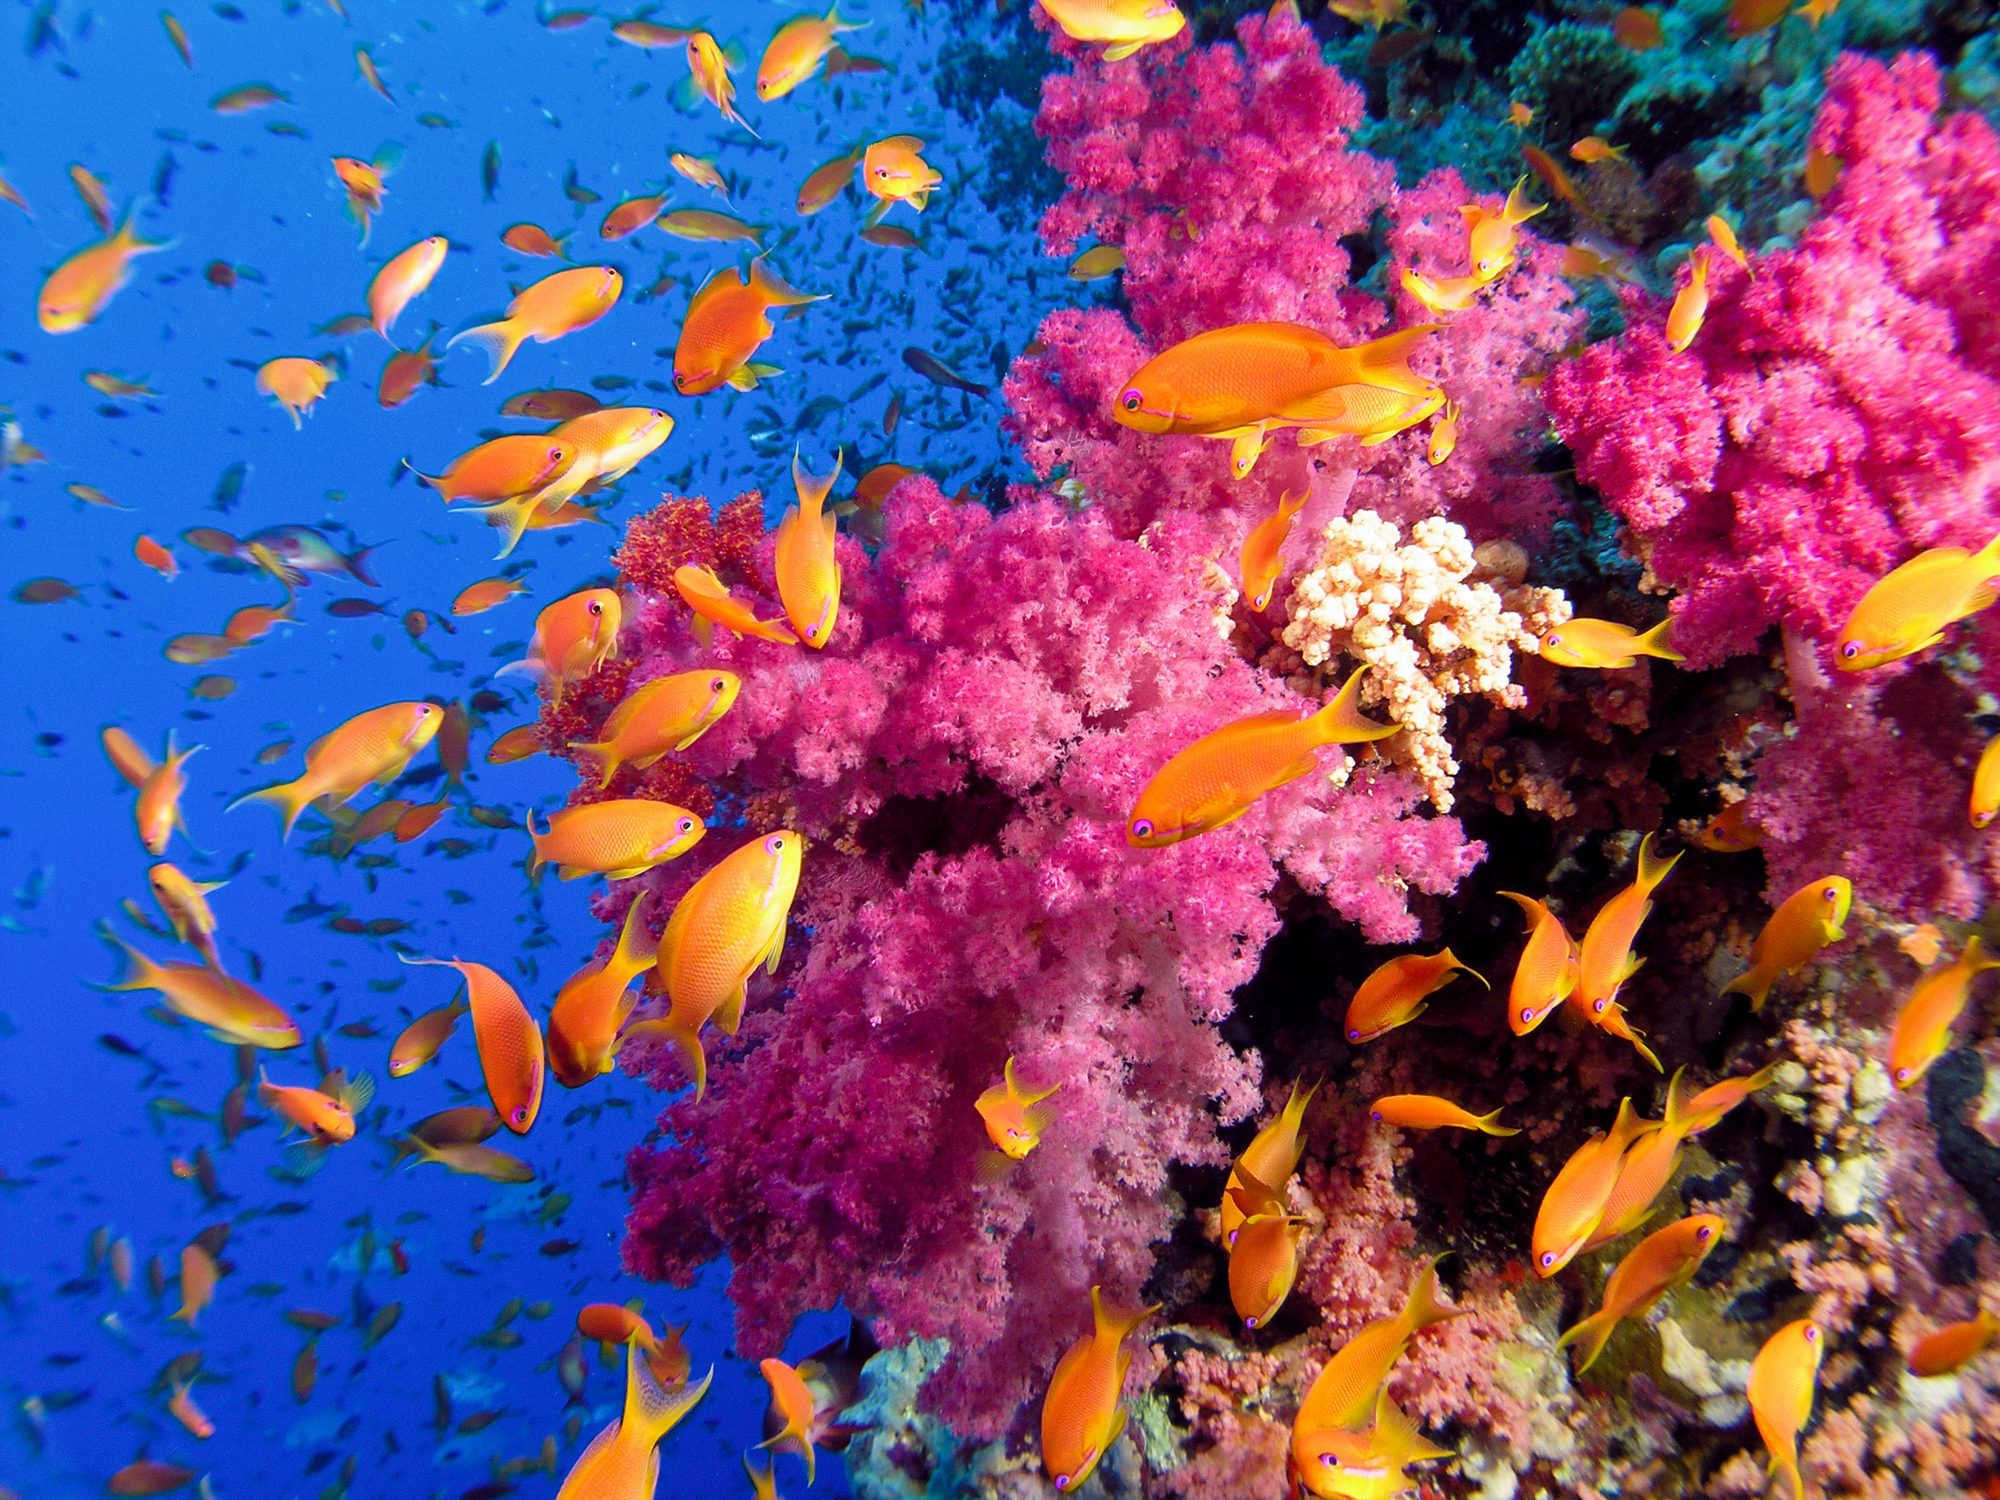 Ocean sea tropical underwater color reef coral school wallpaper